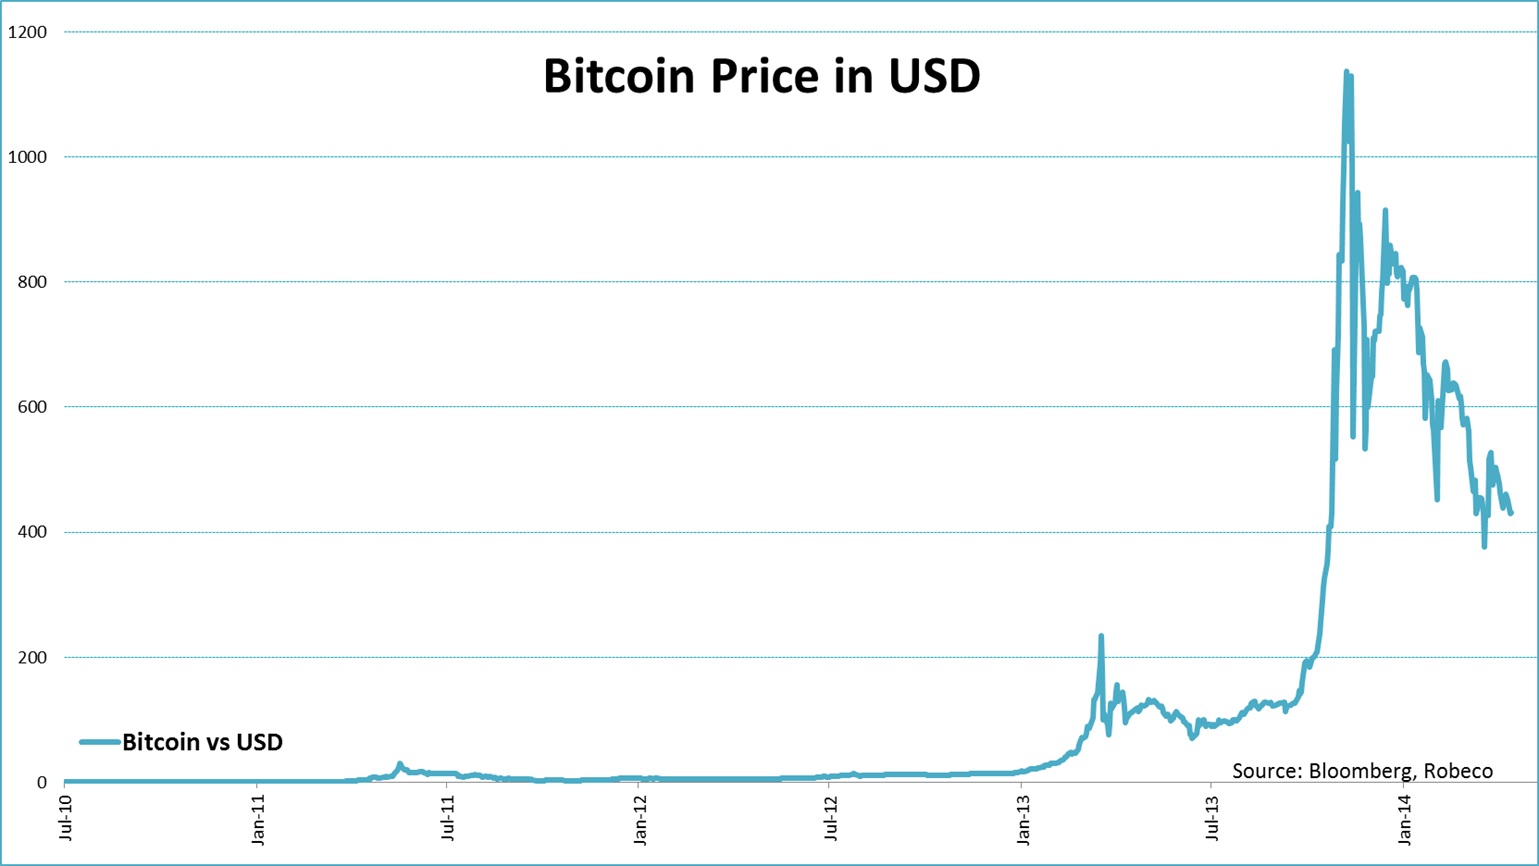 GO IN-DEPTH ON BITCOIN PRICE